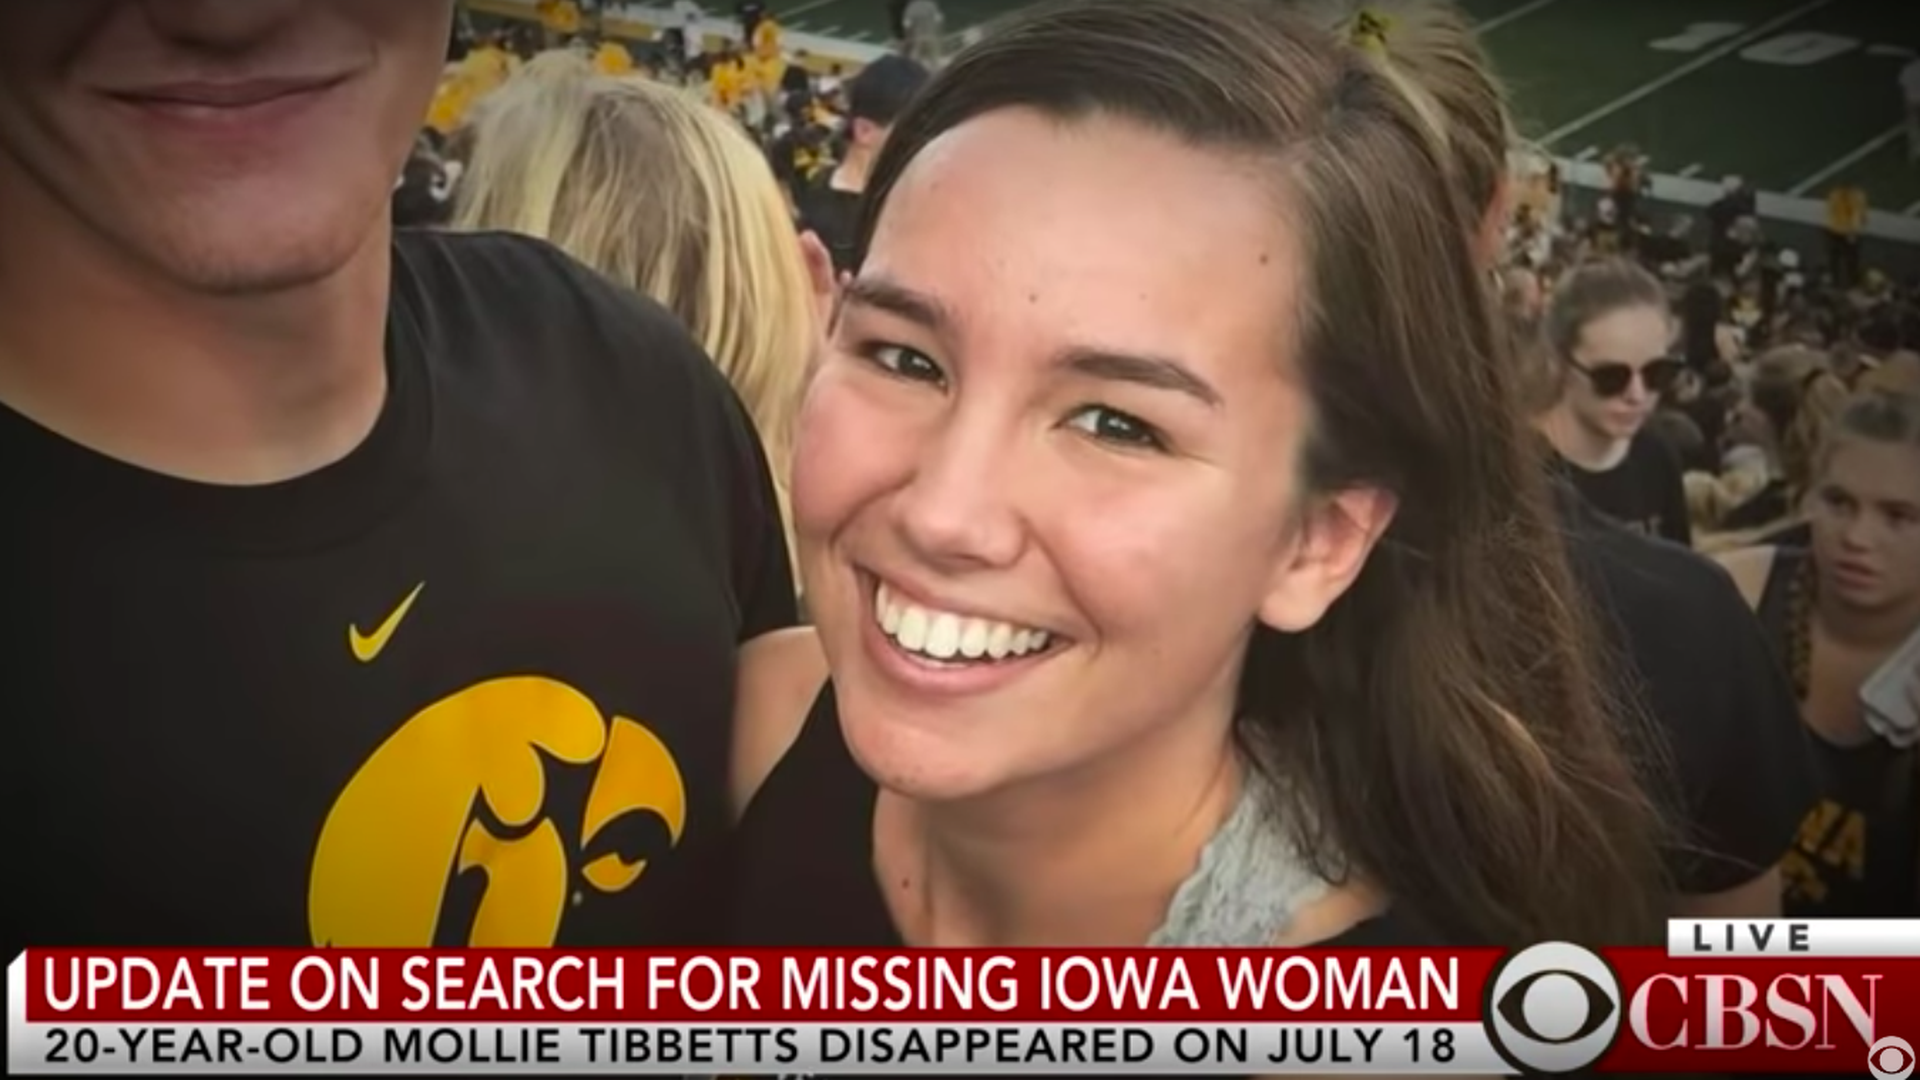 University of Iowa student Mollie Tibbetts, 20. Photo: Screenshot via CBS News YouTube